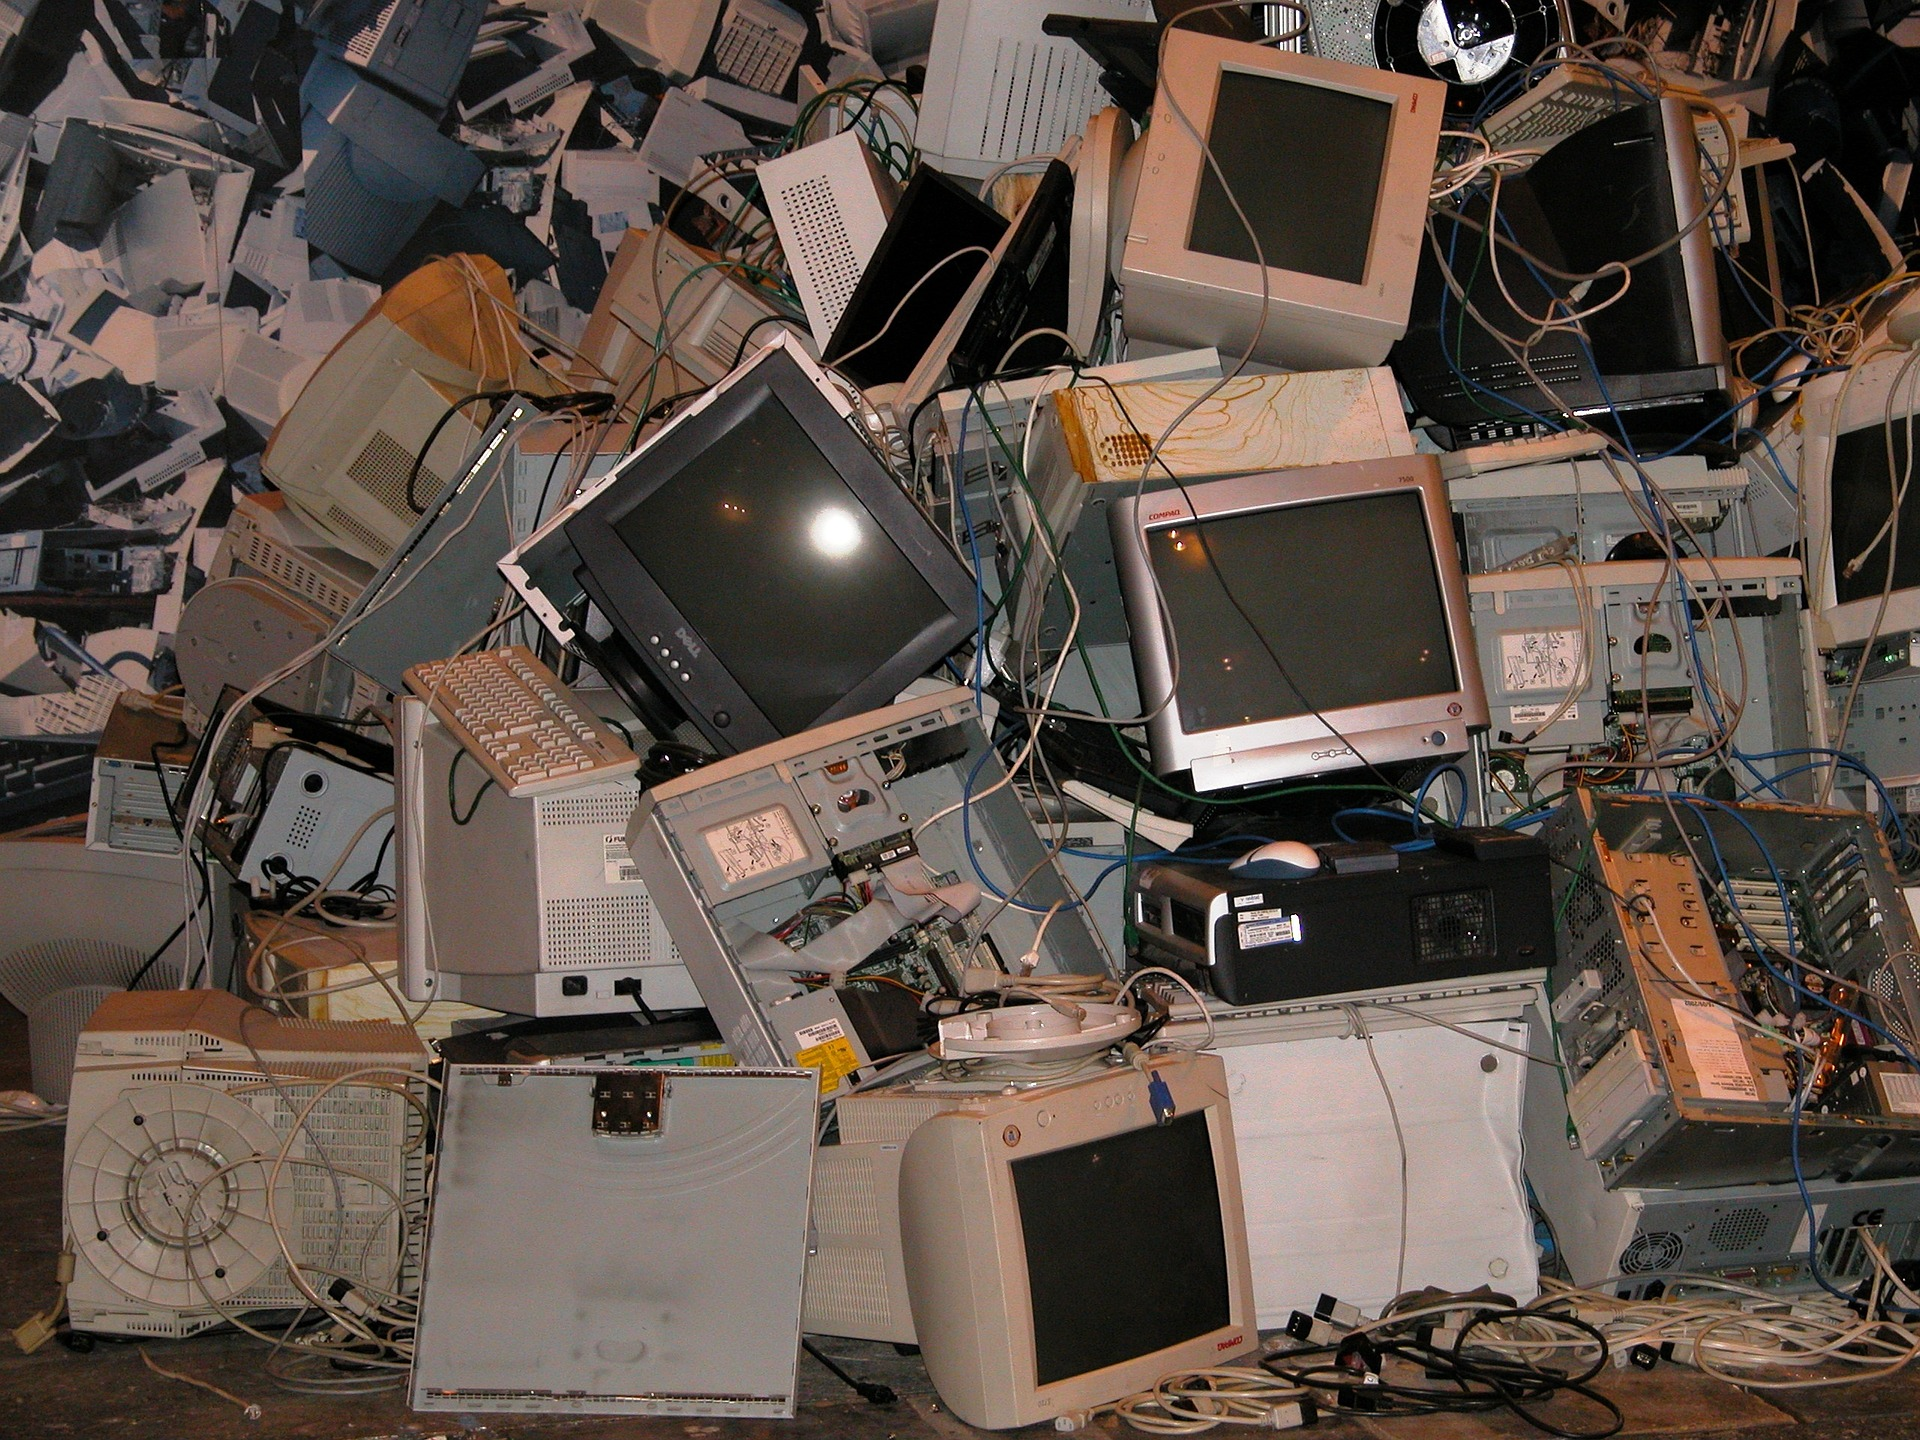 Why is EPR needed? Nigeria's e-waste crisis